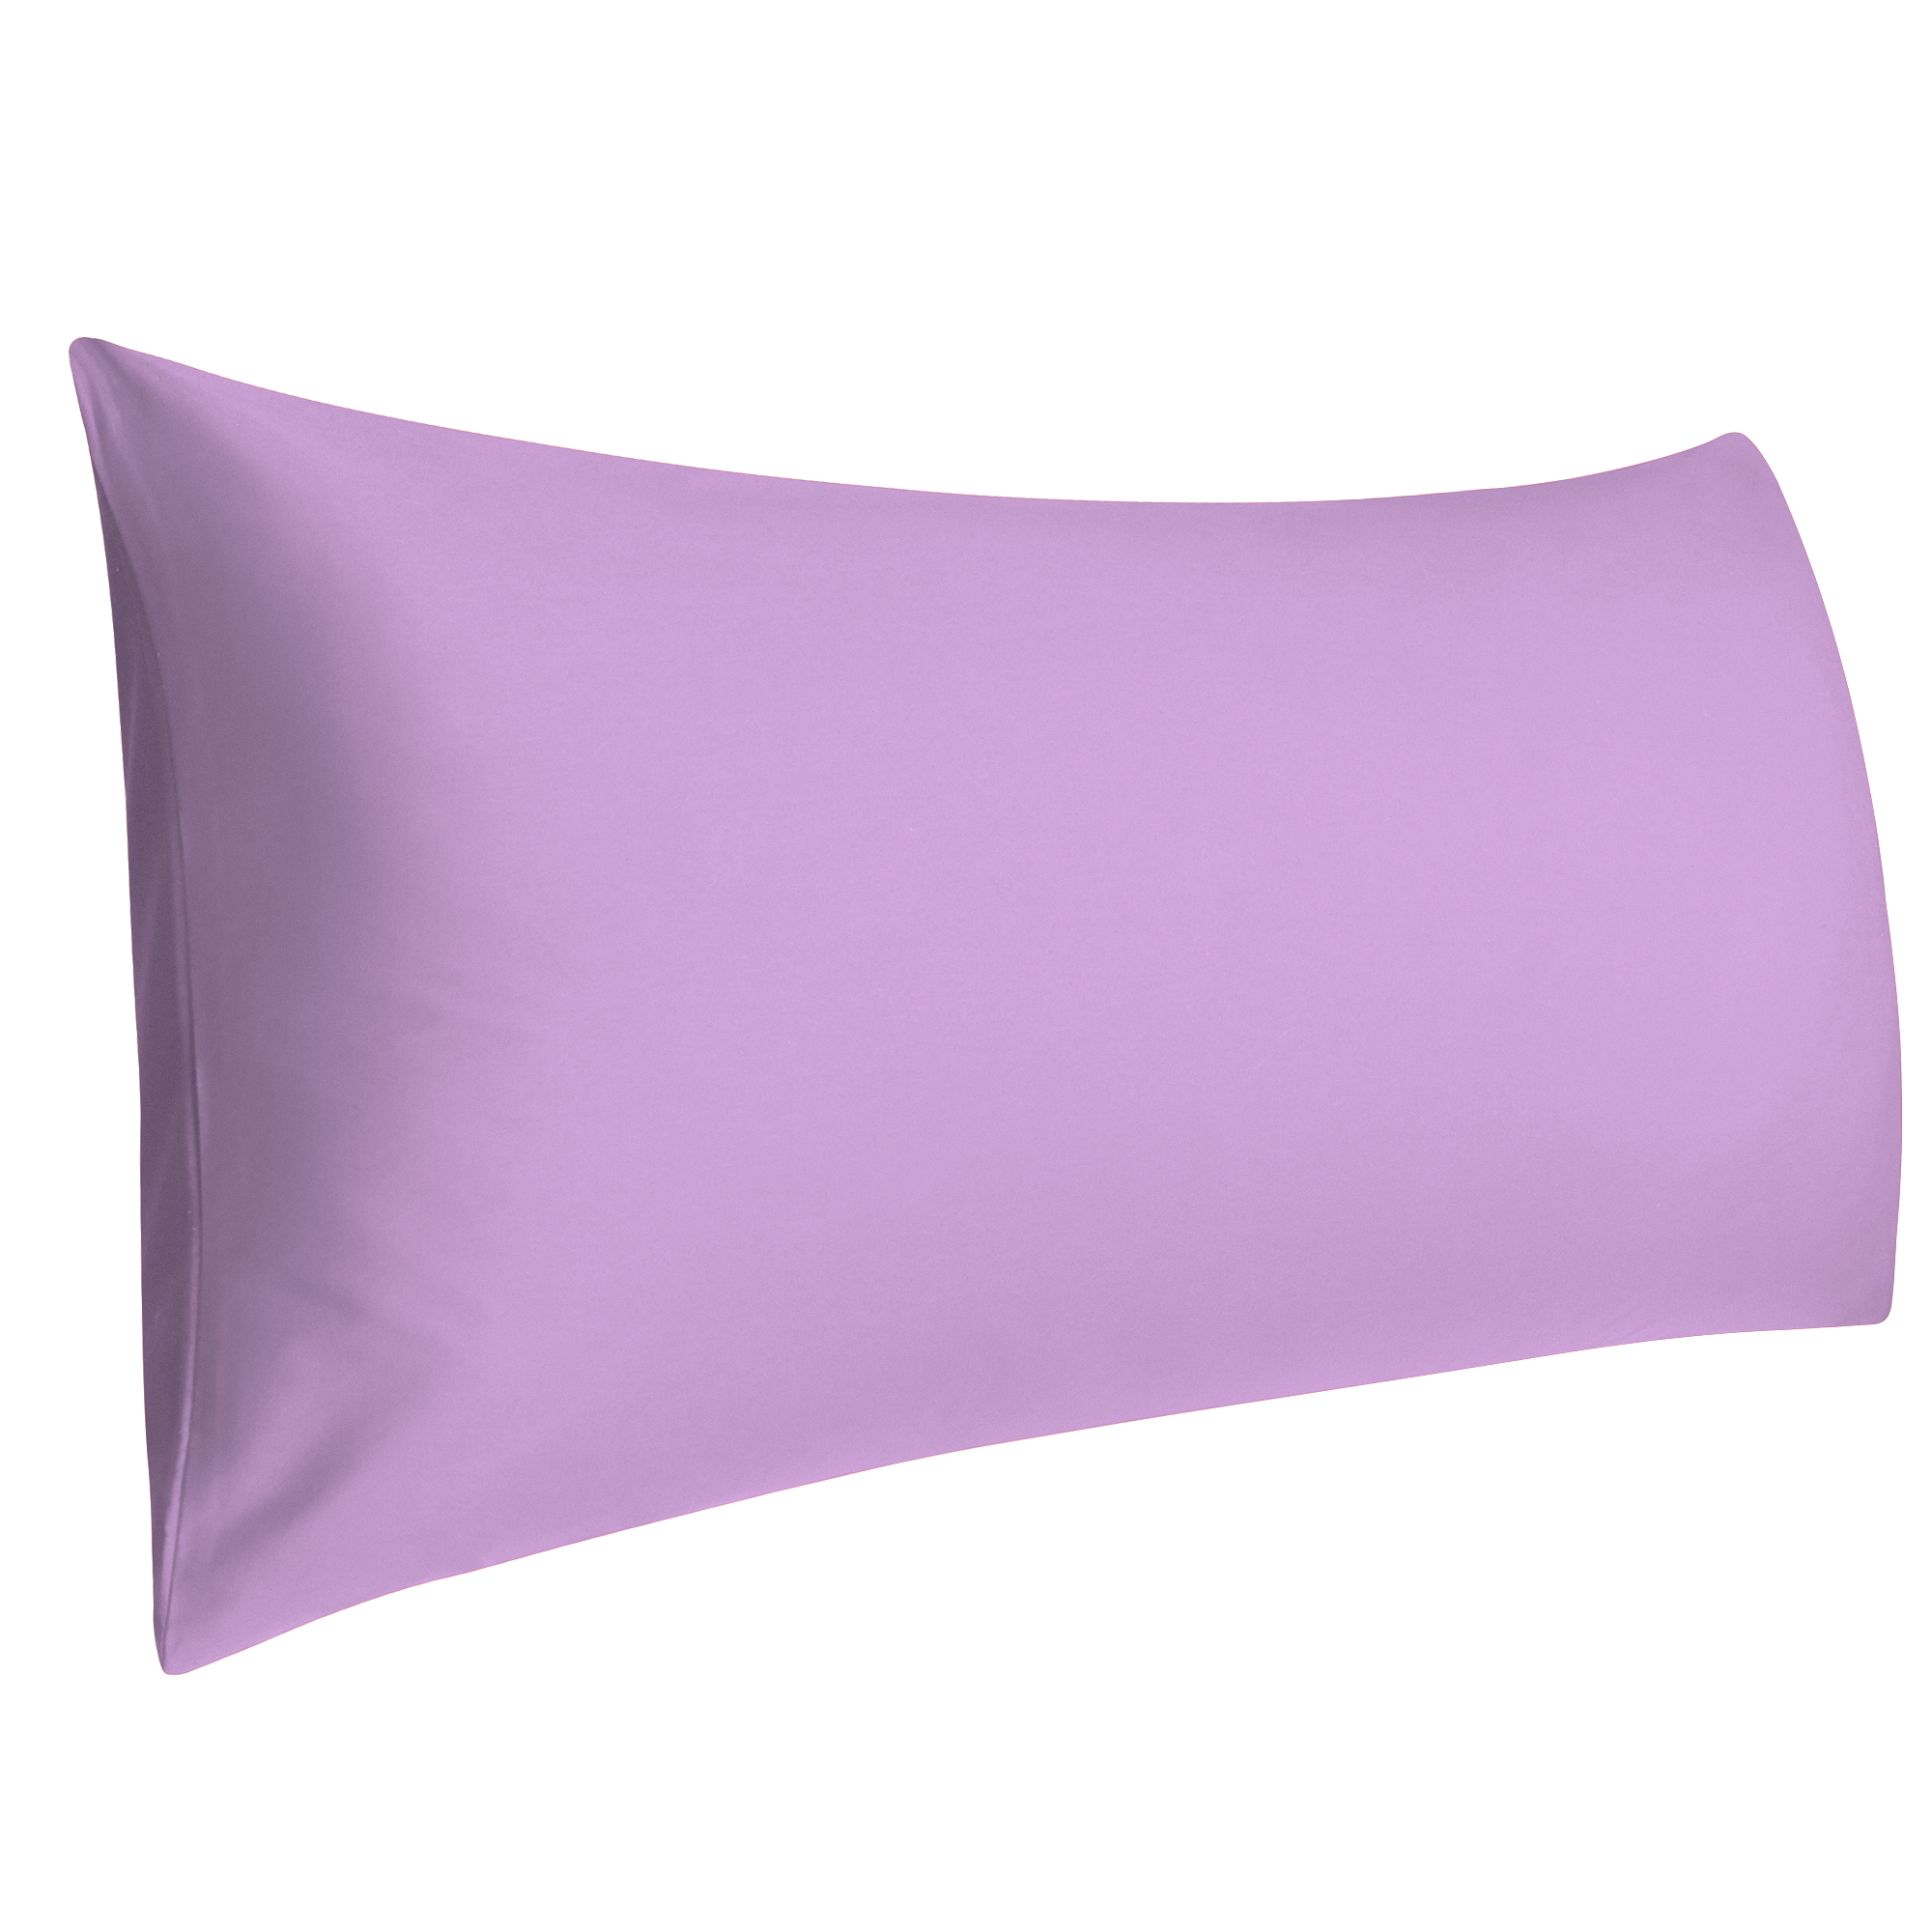 Cotton 300 Thread Count Egyptian Body Size Pillowcases Pillow Cases Covers Light Purple 1 Piece